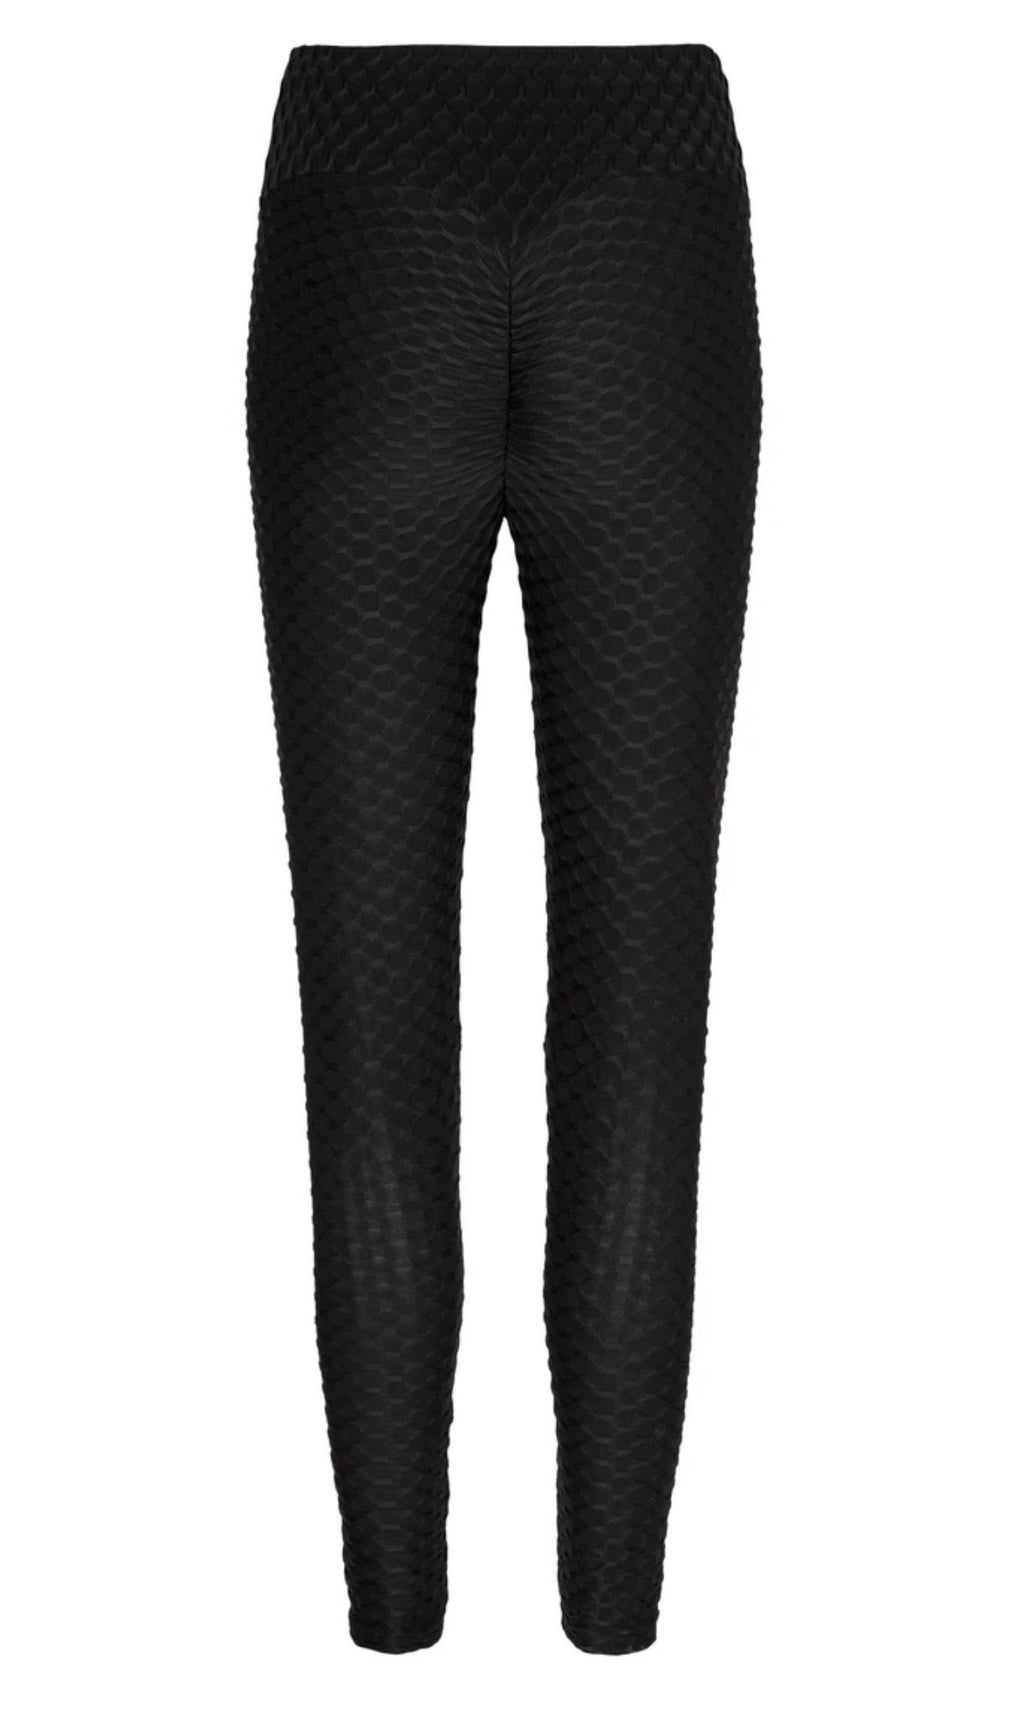 Tik tok Leggings Black- arriving early march - Shop at Emily's